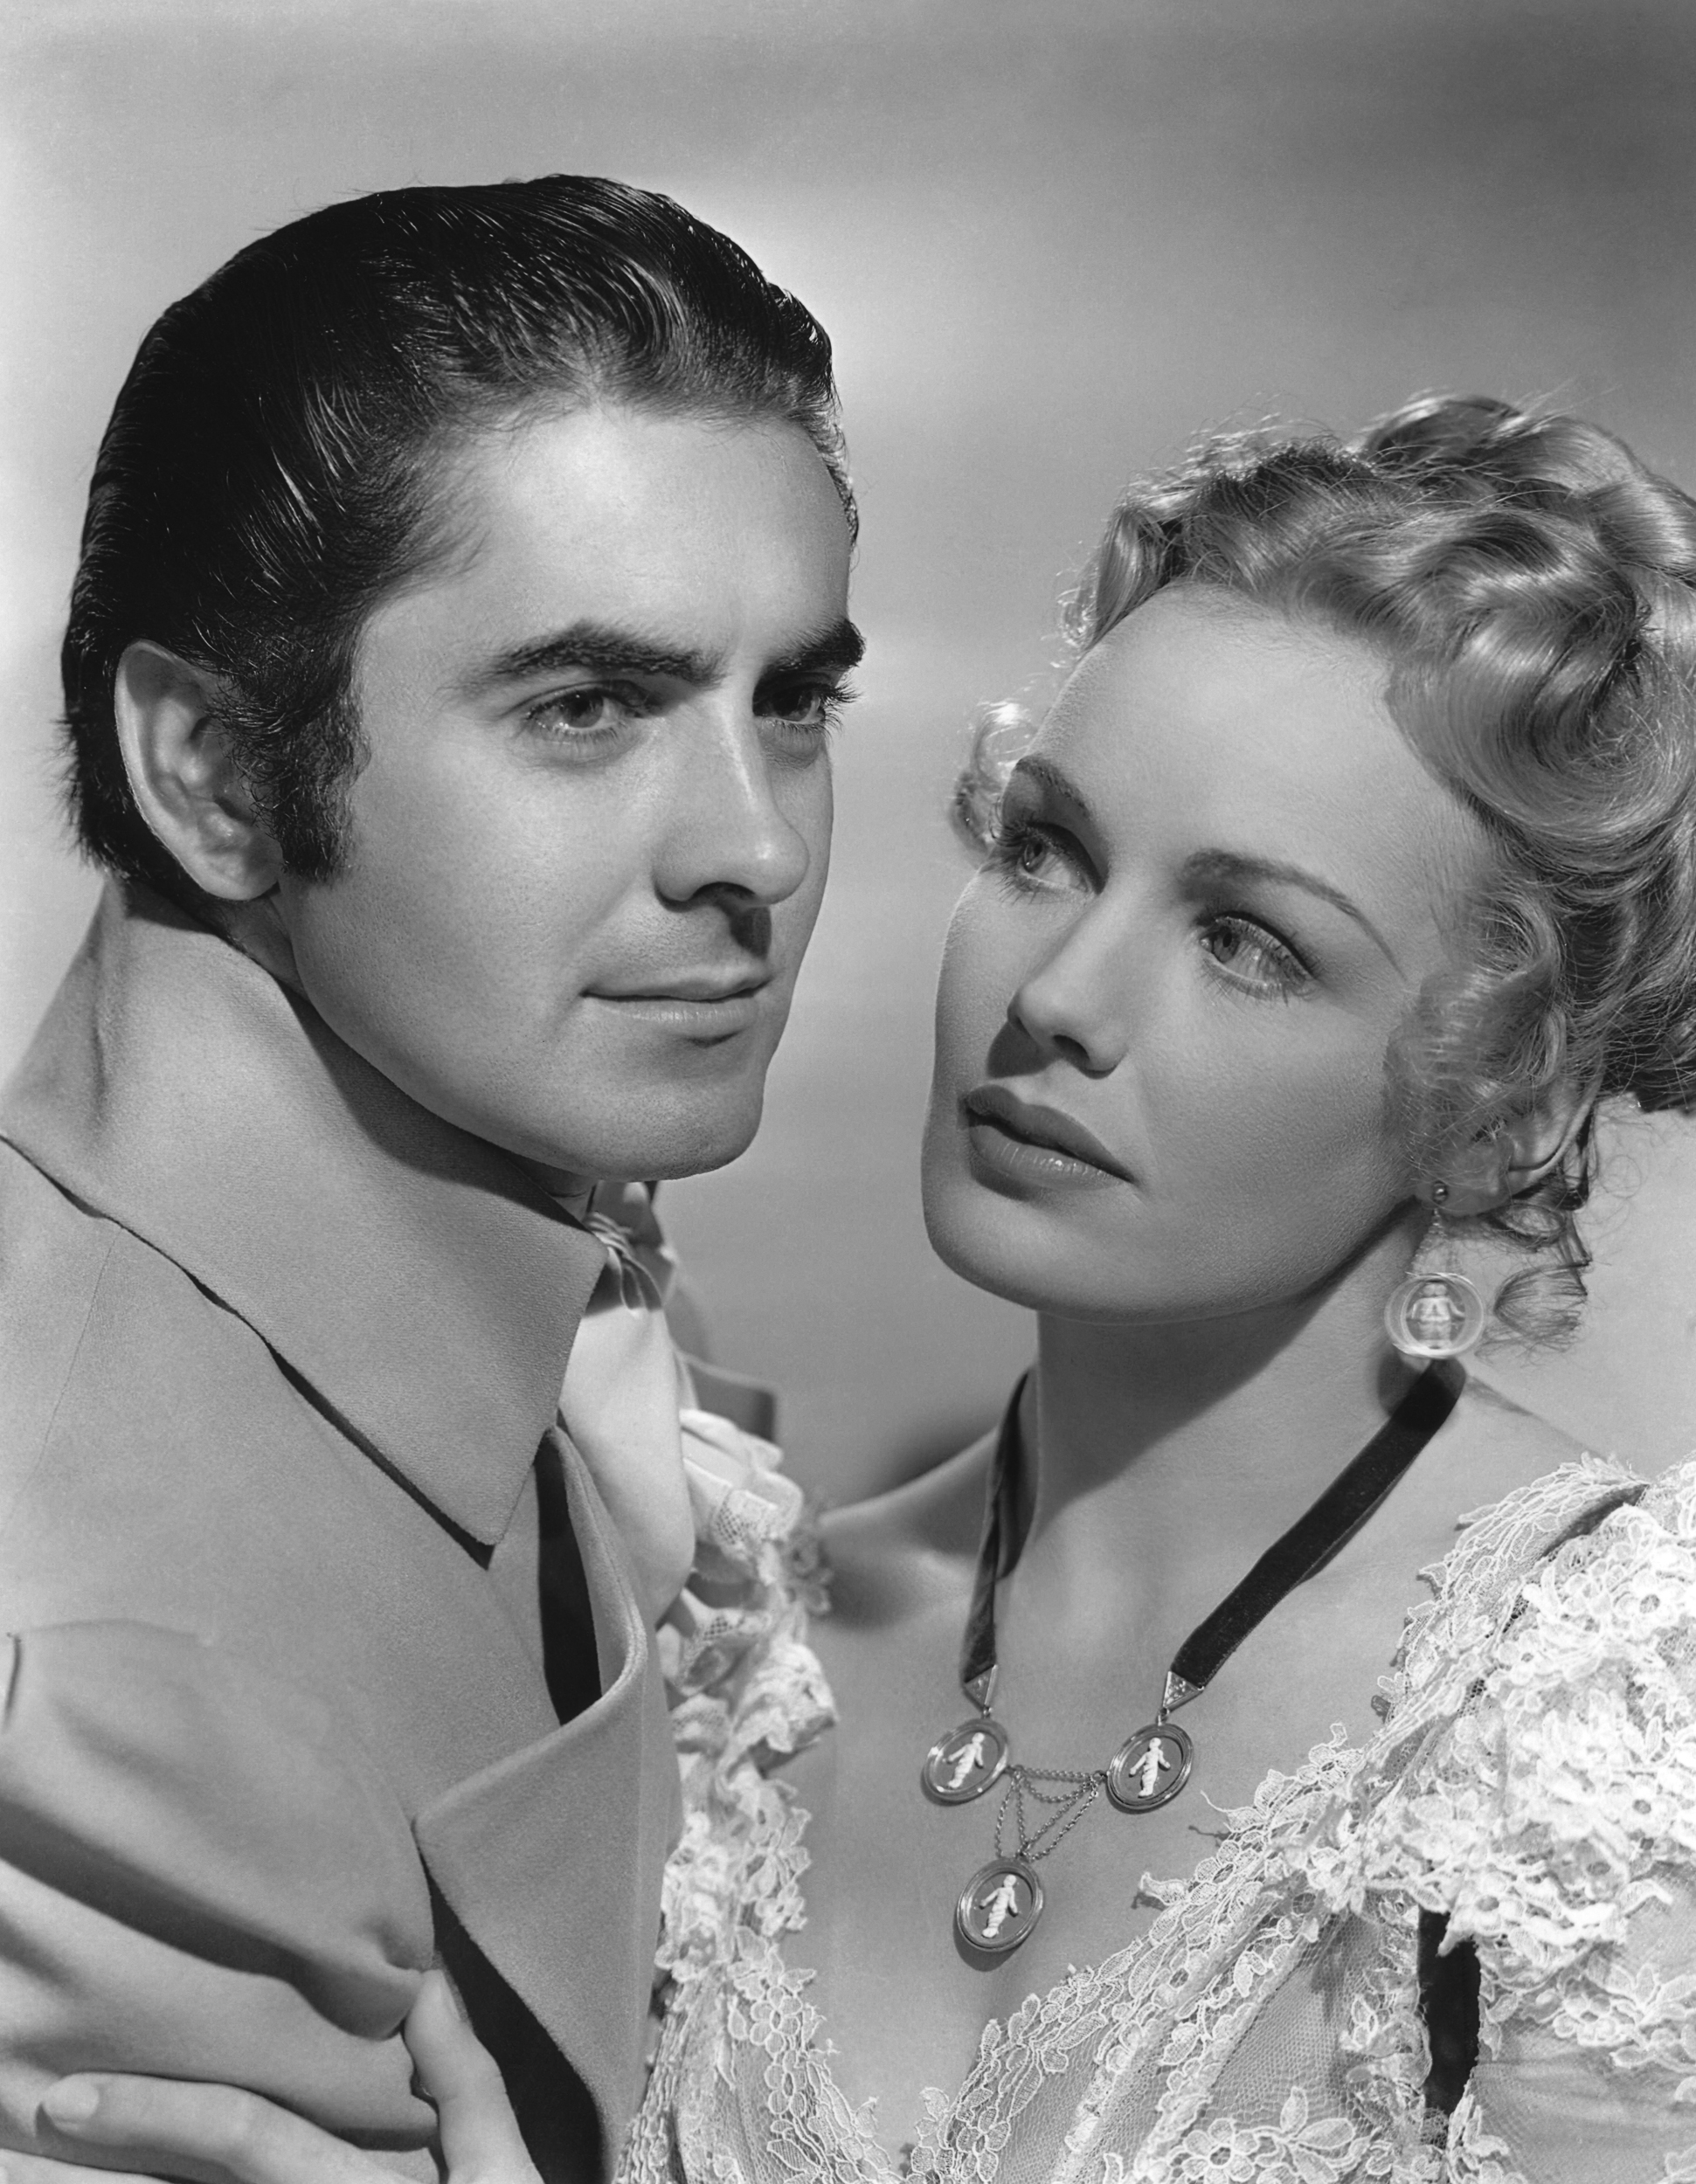 Tyrone Power, Jr. in Son of Fury With Frances Farmer